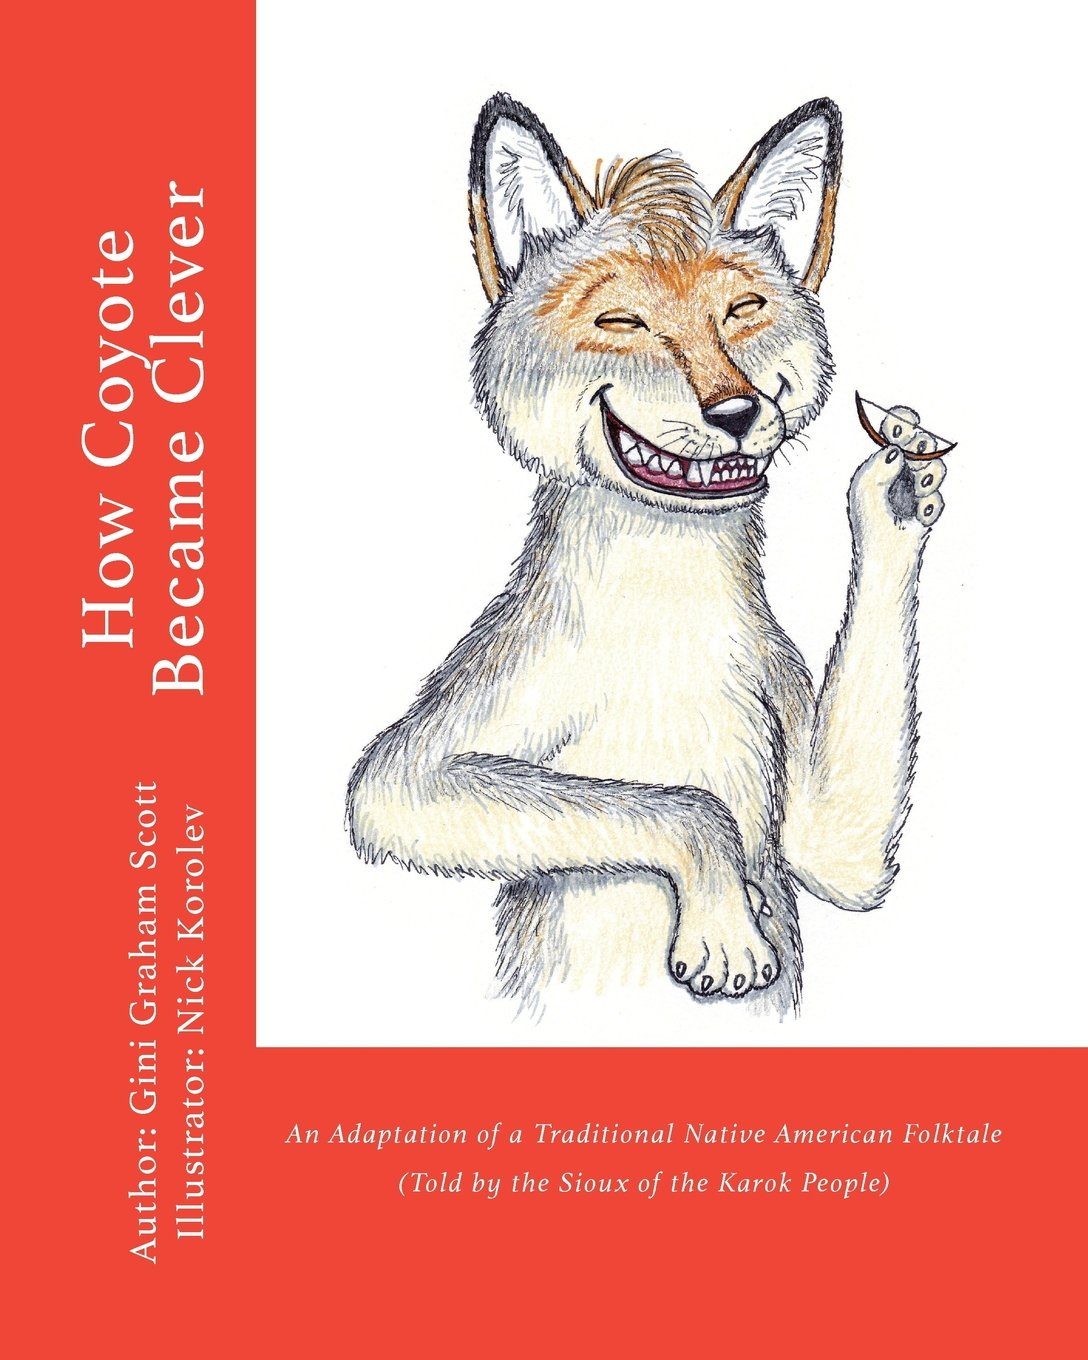 How Coyote Became Clever: An Adaptation of a Traditional Native American Folktale (Told by the Karok People) ebook